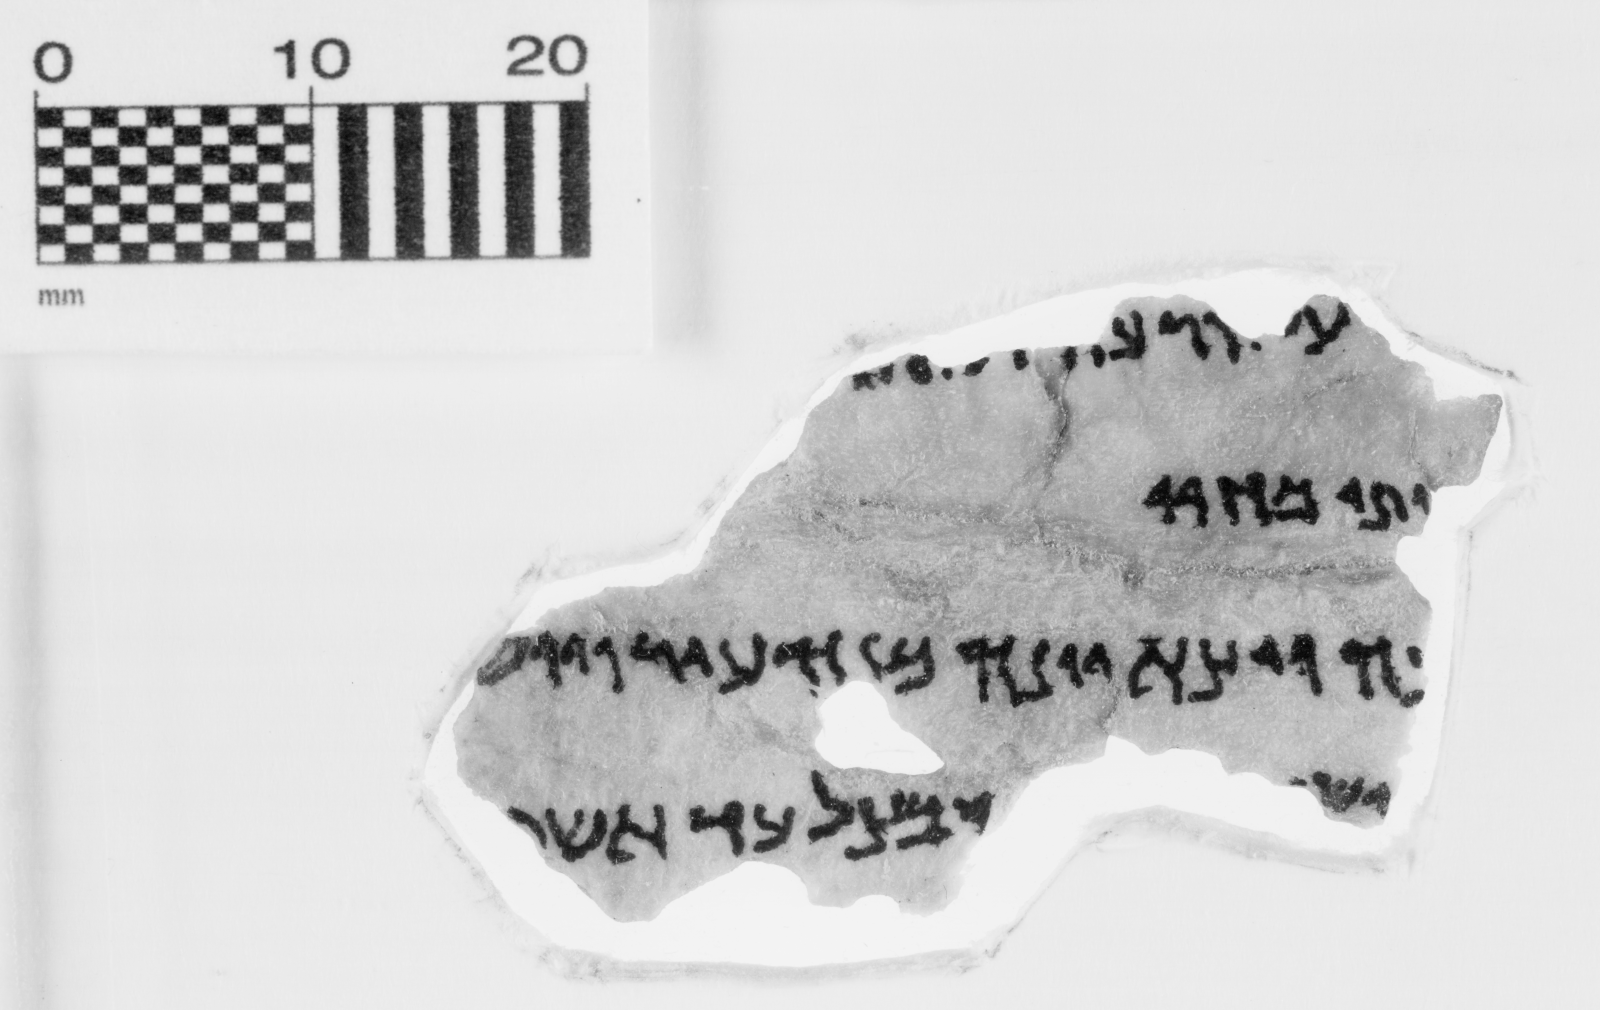 This fragment is identified as Jonah 4:2-5, and it is part of the Museum of the Bible's collection of 16 Dead Sea Scrolls fragments. (Courtesy Museum of the Bible)